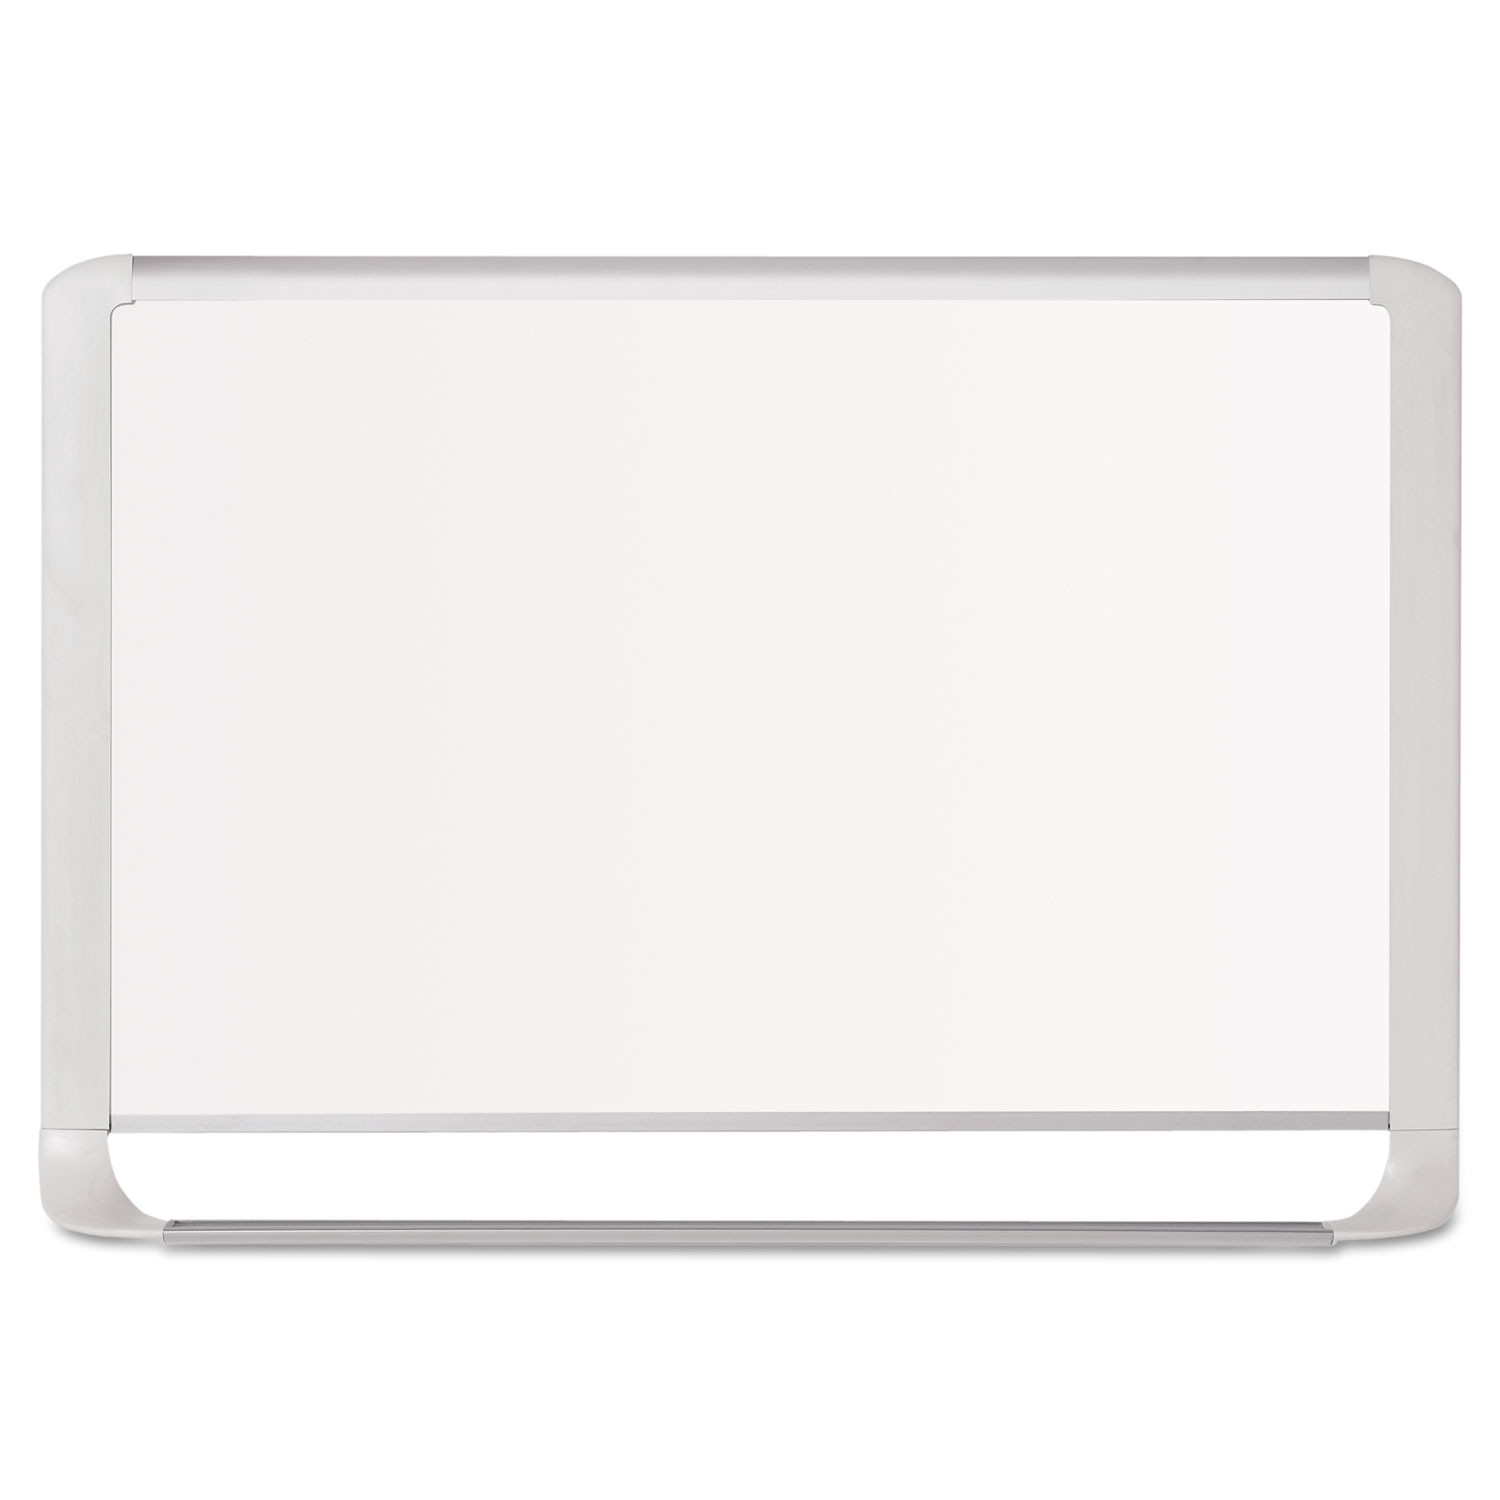 Lacquered steel magnetic dry erase board, 24 x 36, Silver/White